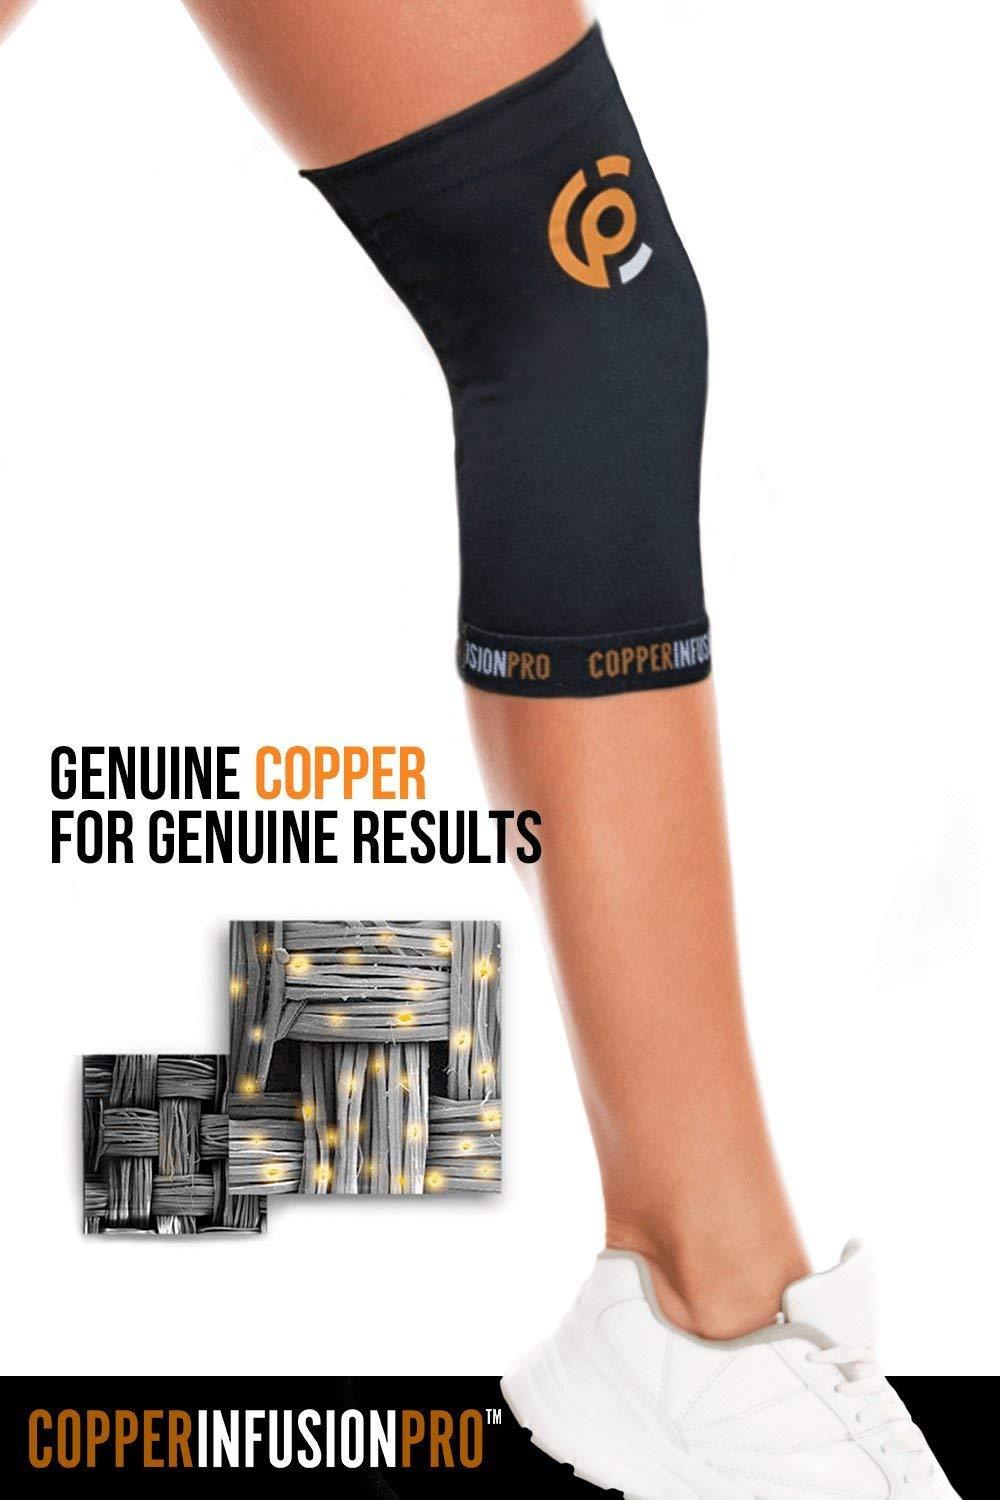 ba10a5cb60 Top 10 Best Copper Knee Braces in 2019 Reviews - Top Best Pro Review